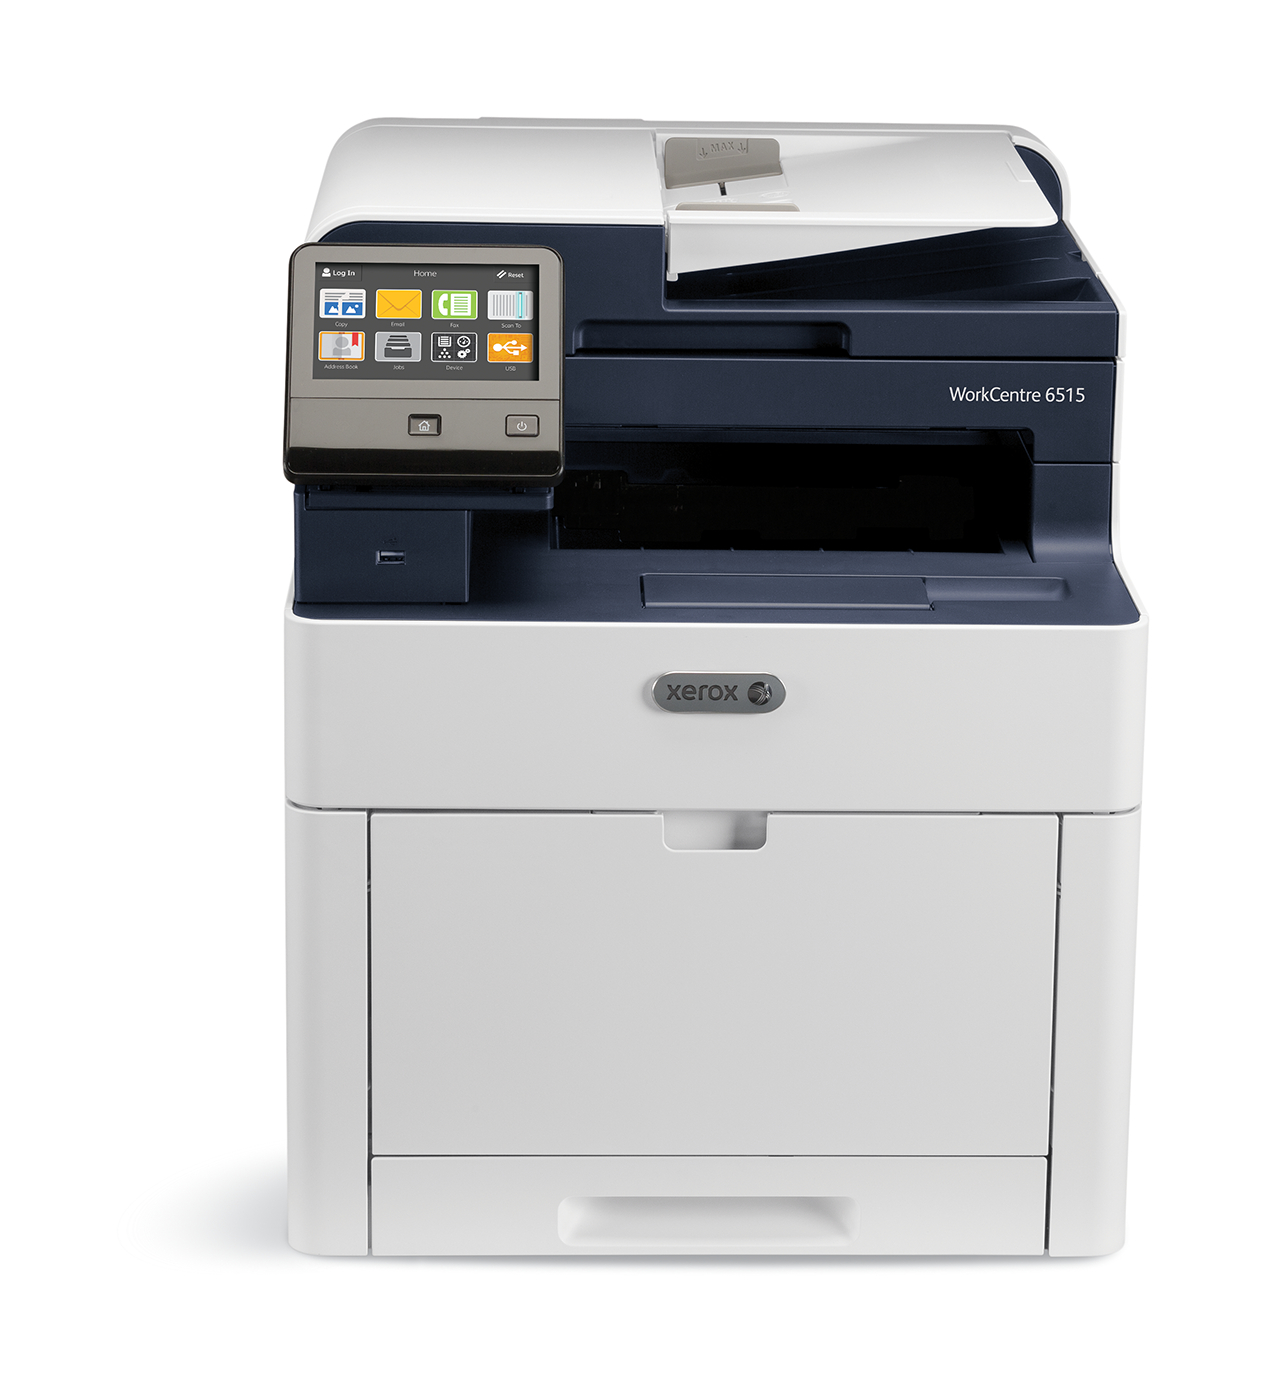 1 tray Front Printer